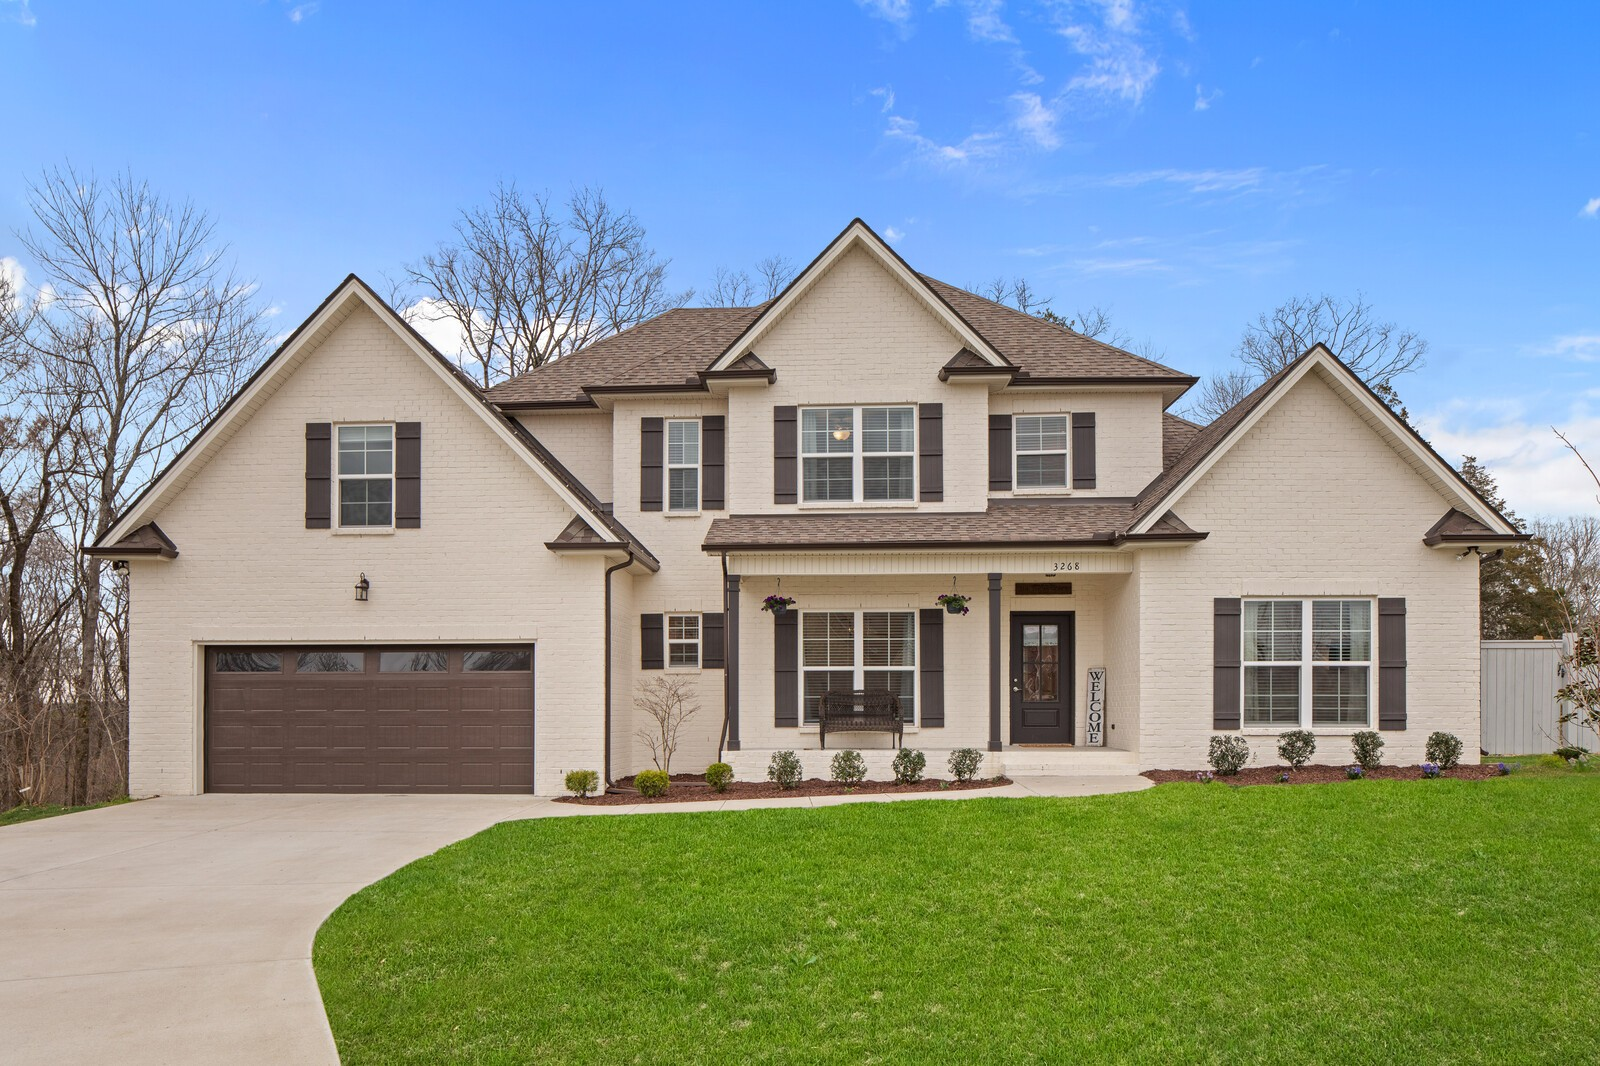 3268 Potts Xing Property Photo - LA VERGNE, TN real estate listing